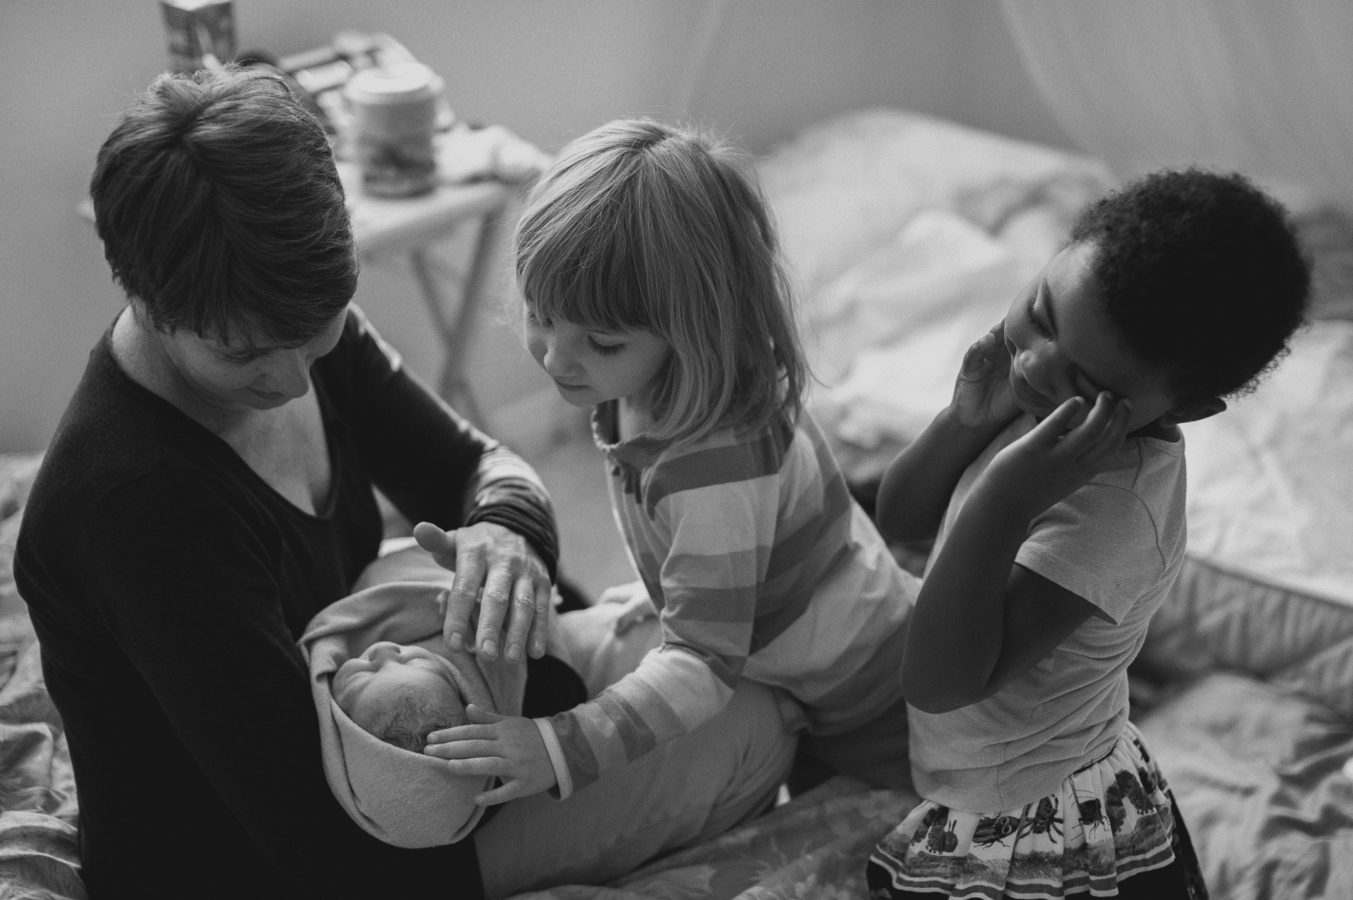 2 kids looking amazed at a young grandmother holding a brand new baby